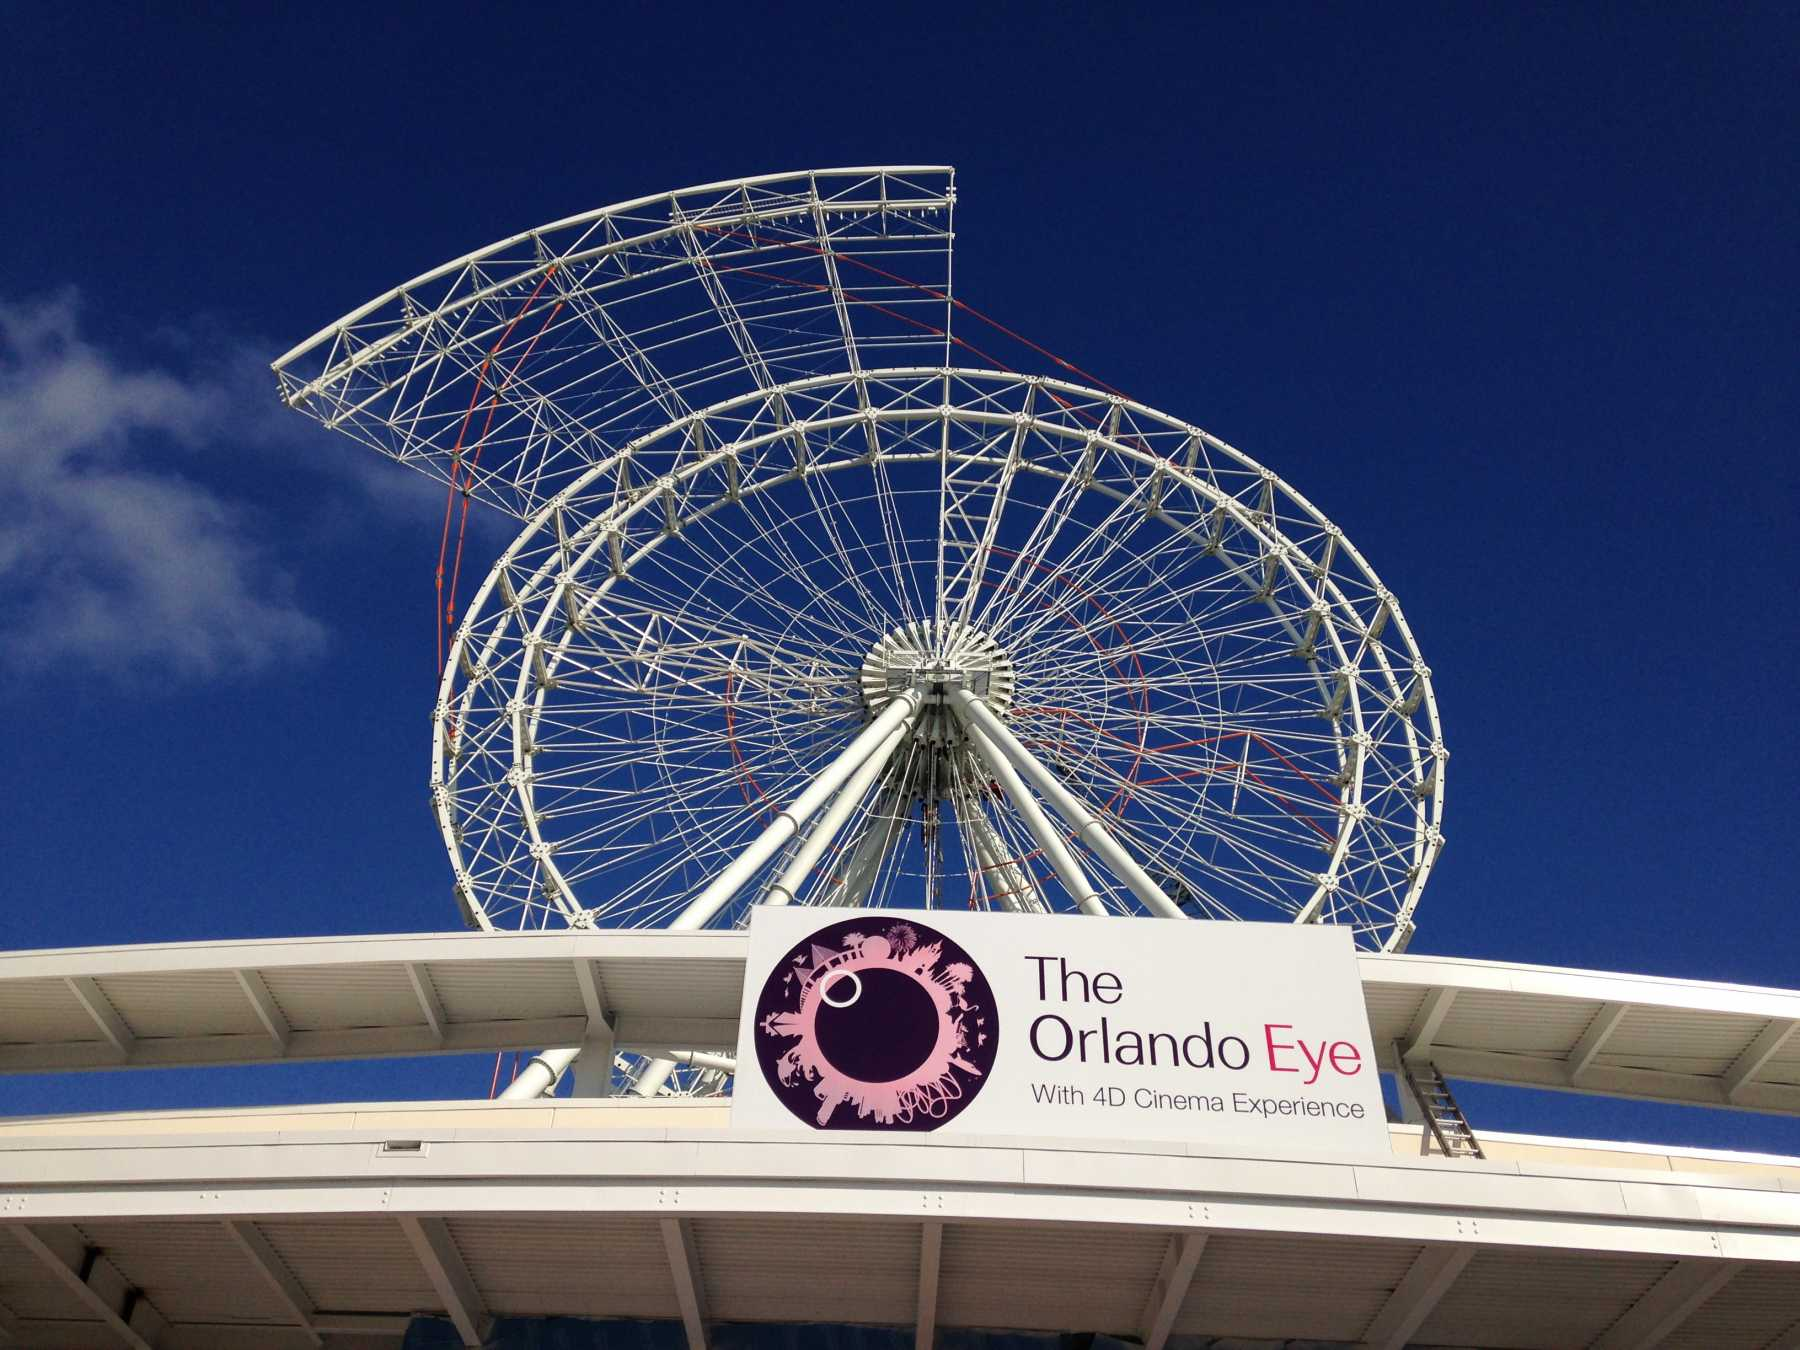 Ride Capsules For The Orlando Eye Arrive | orlando eye